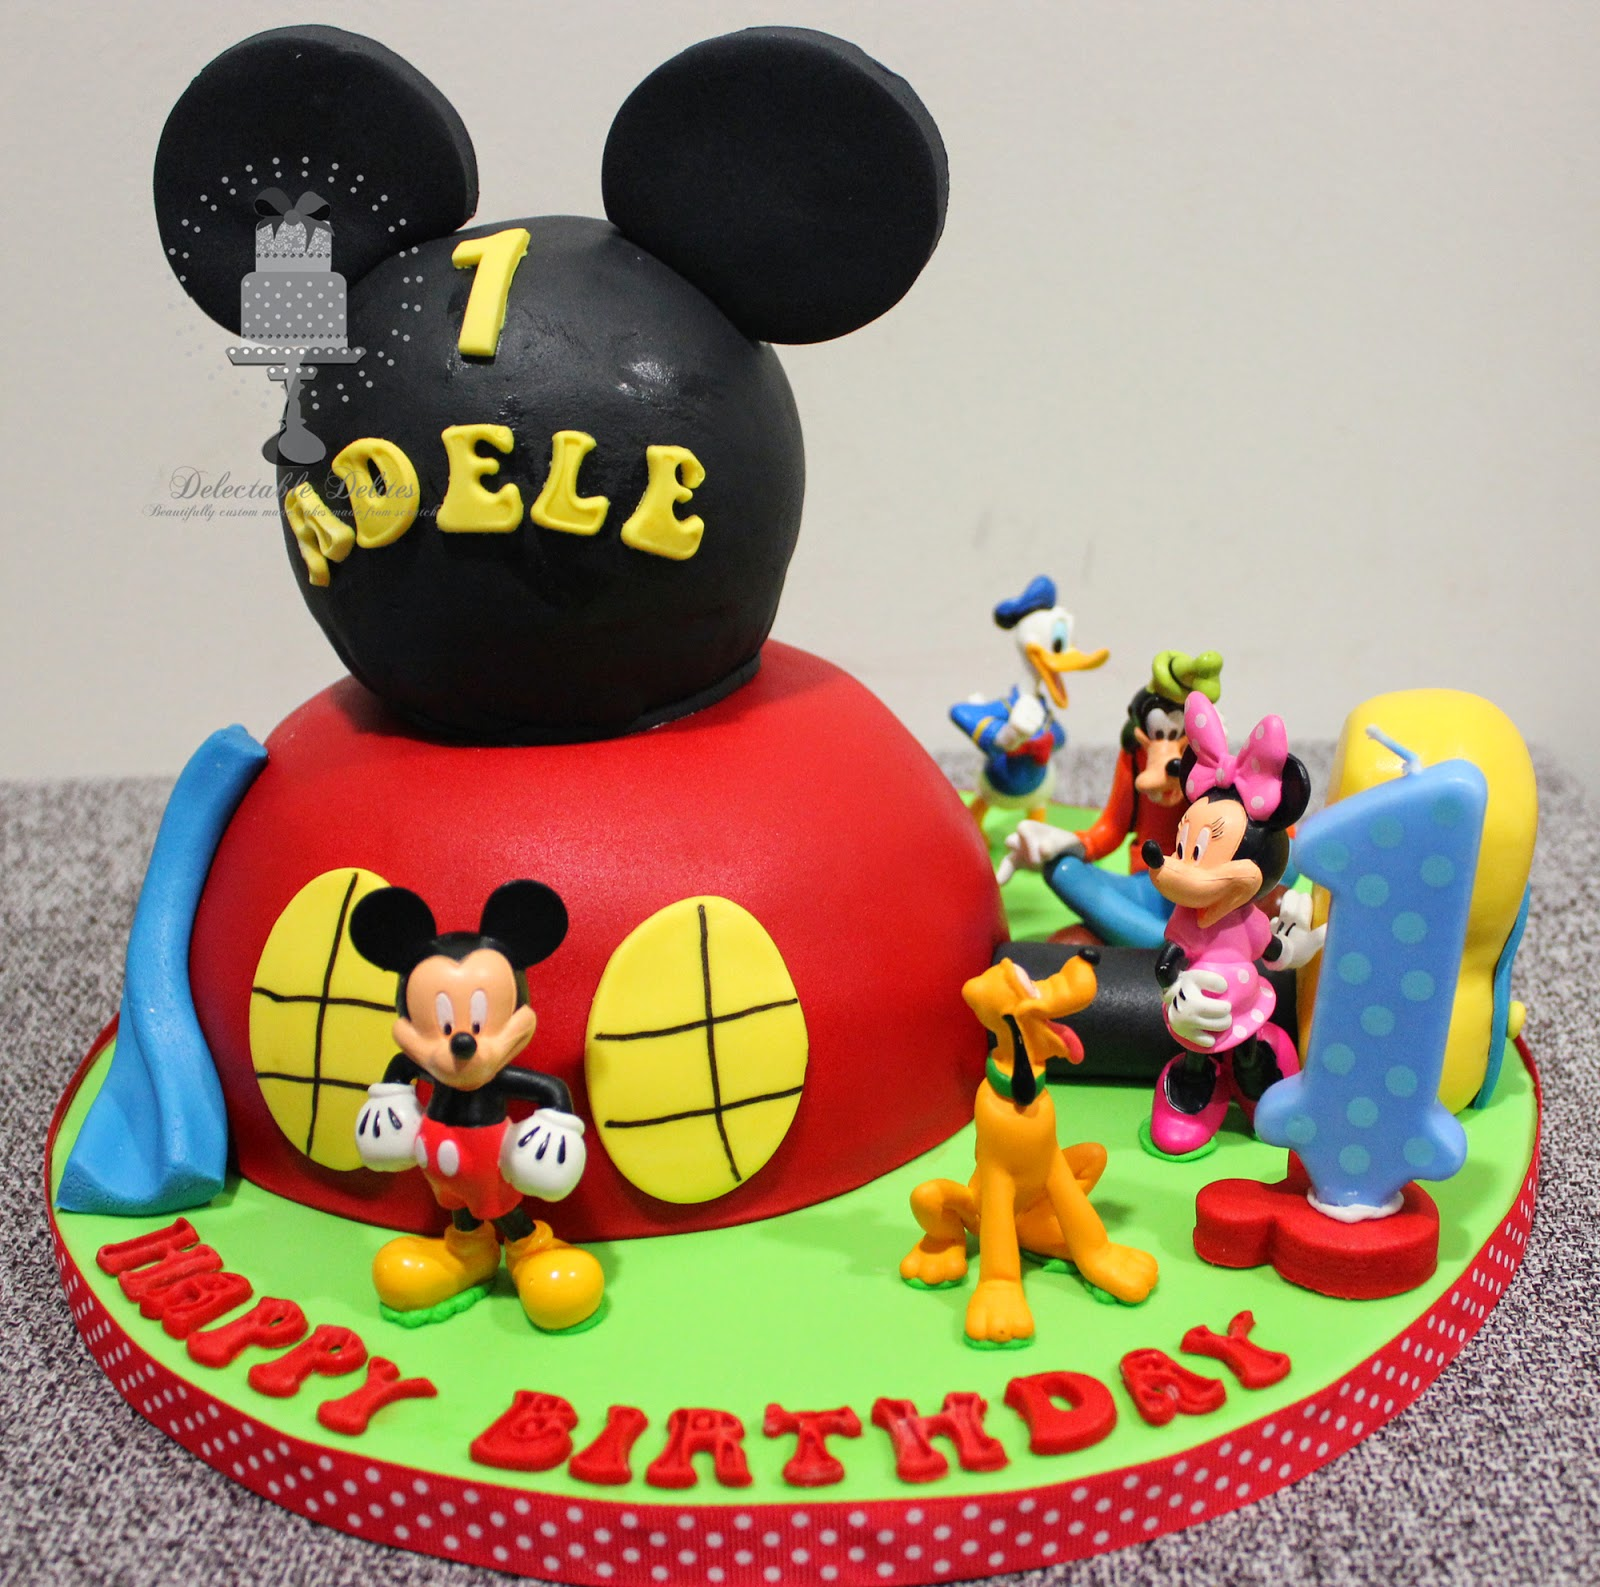 Delectable Delites Mickey Mouse Clubhouse Cake For Adeles 1st Birthday